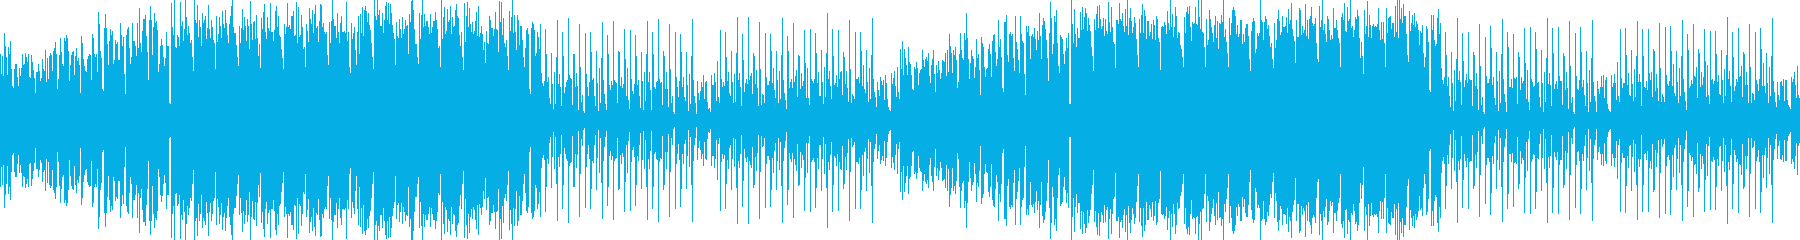 Admission of a refreshing and bright EDM/CM's reproduced waveform